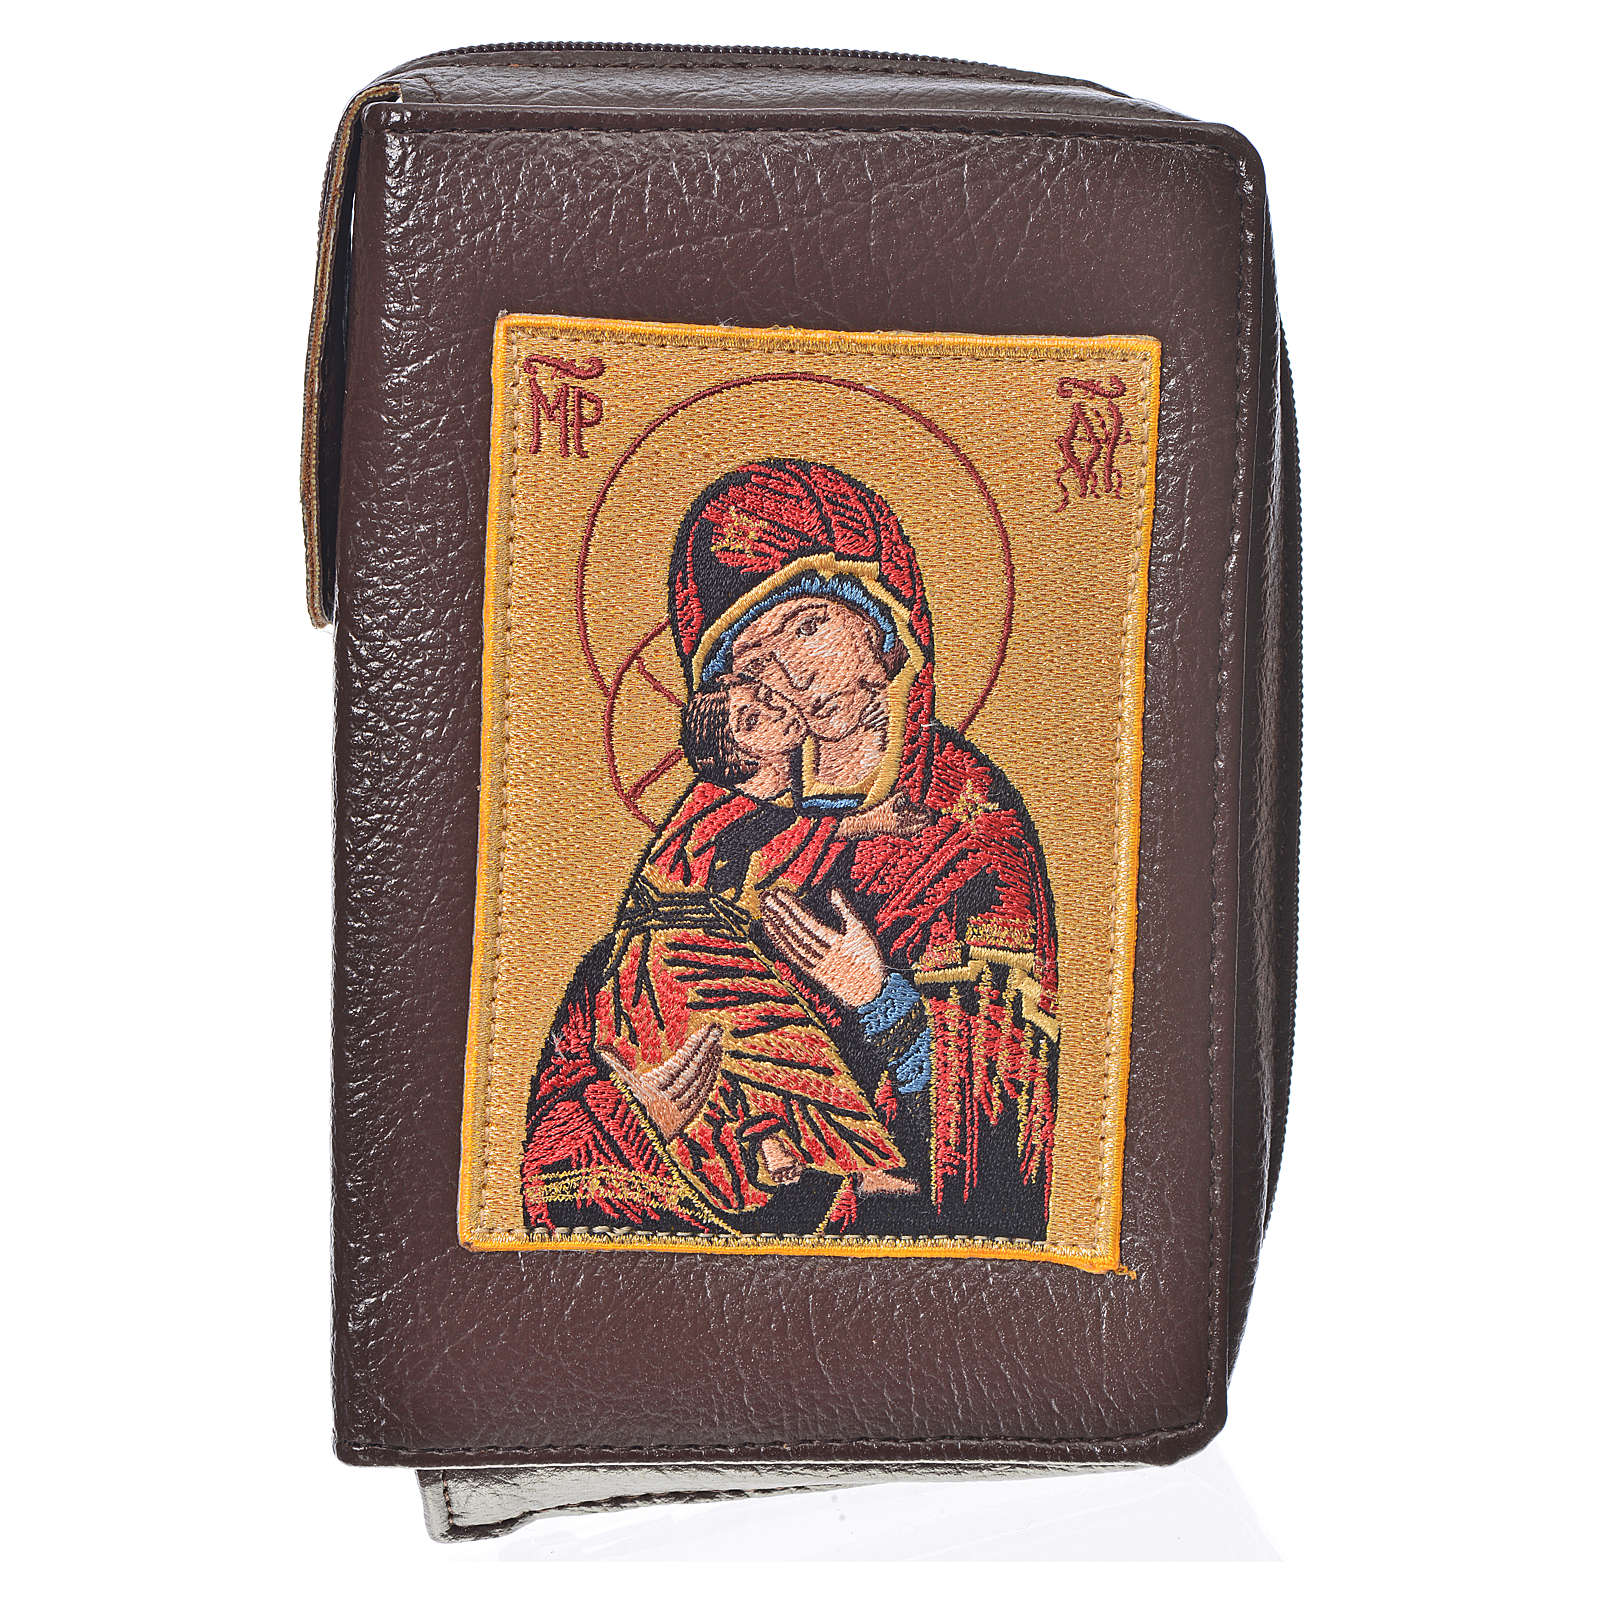 Ordinary Time III cover in bonded leather with image of Our Lady and Baby Jesus 4